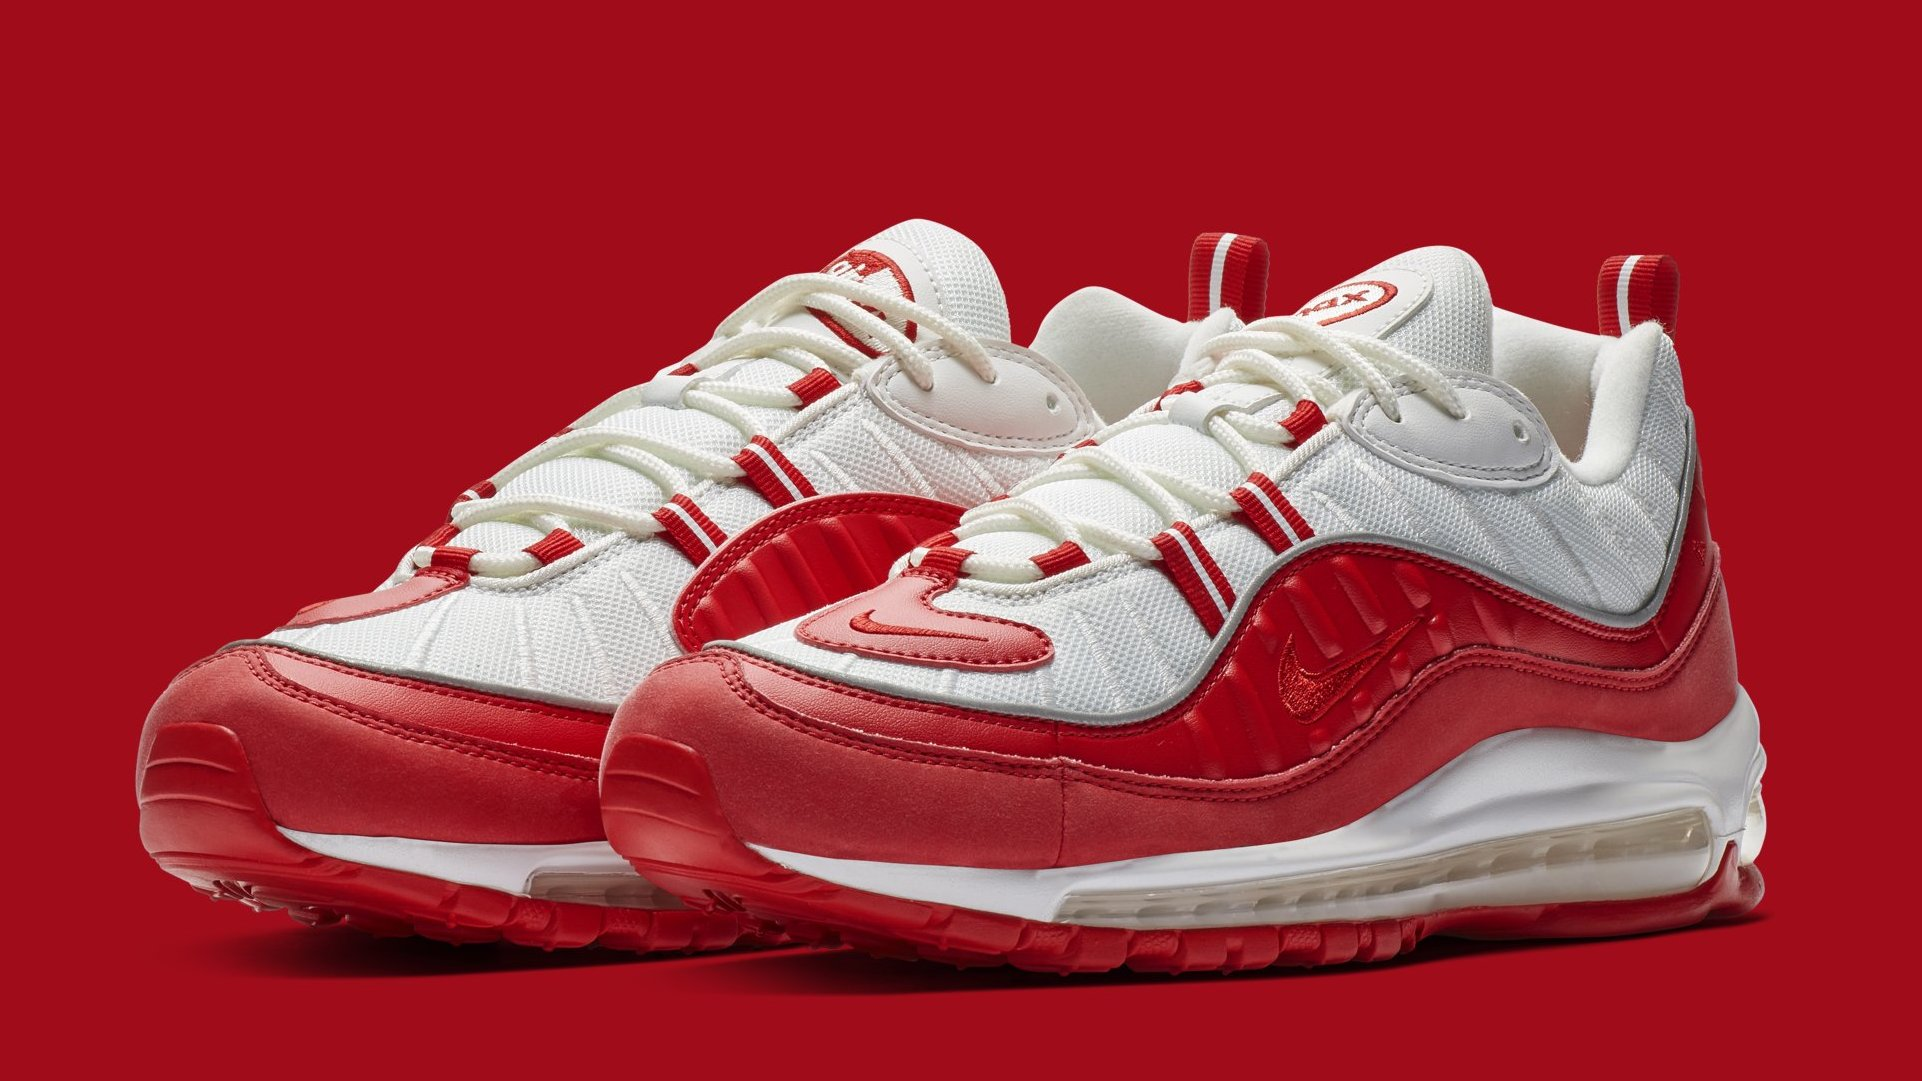 esquina dólar estadounidense navegador  Nike Air Max 98 'University Red' 640744-602 Release Date | Sole Collector